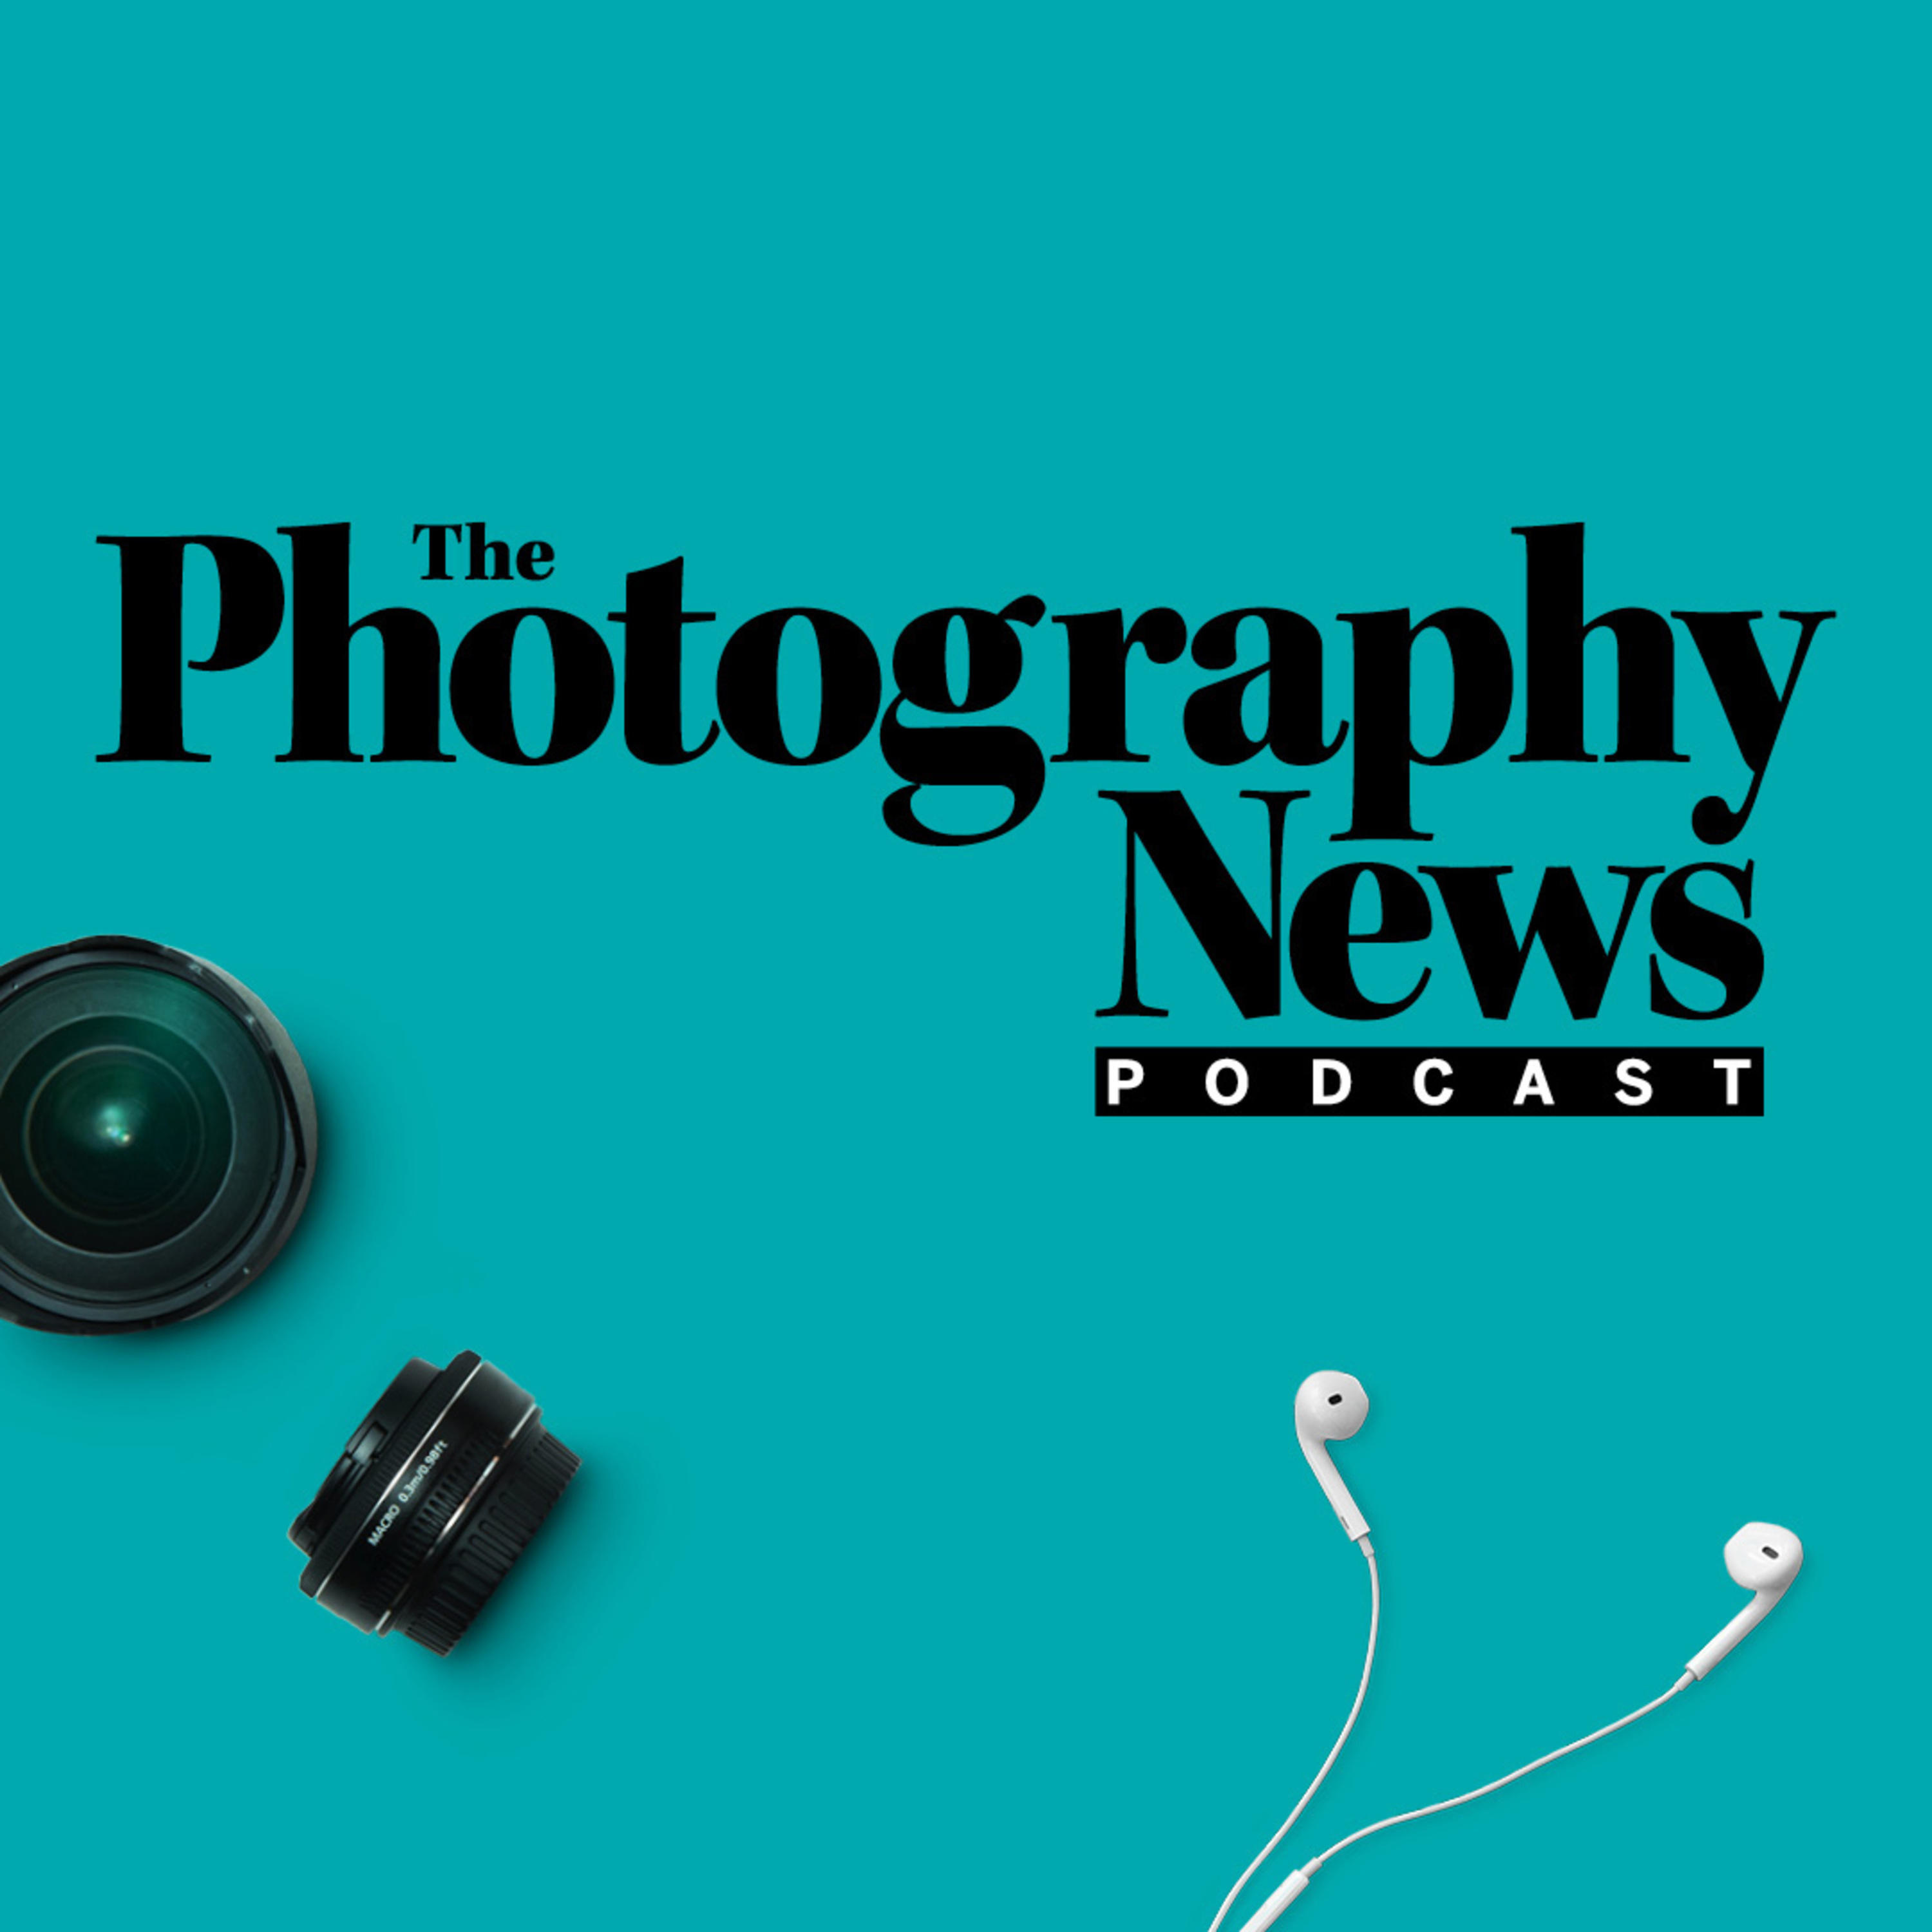 The Photography News Podcast